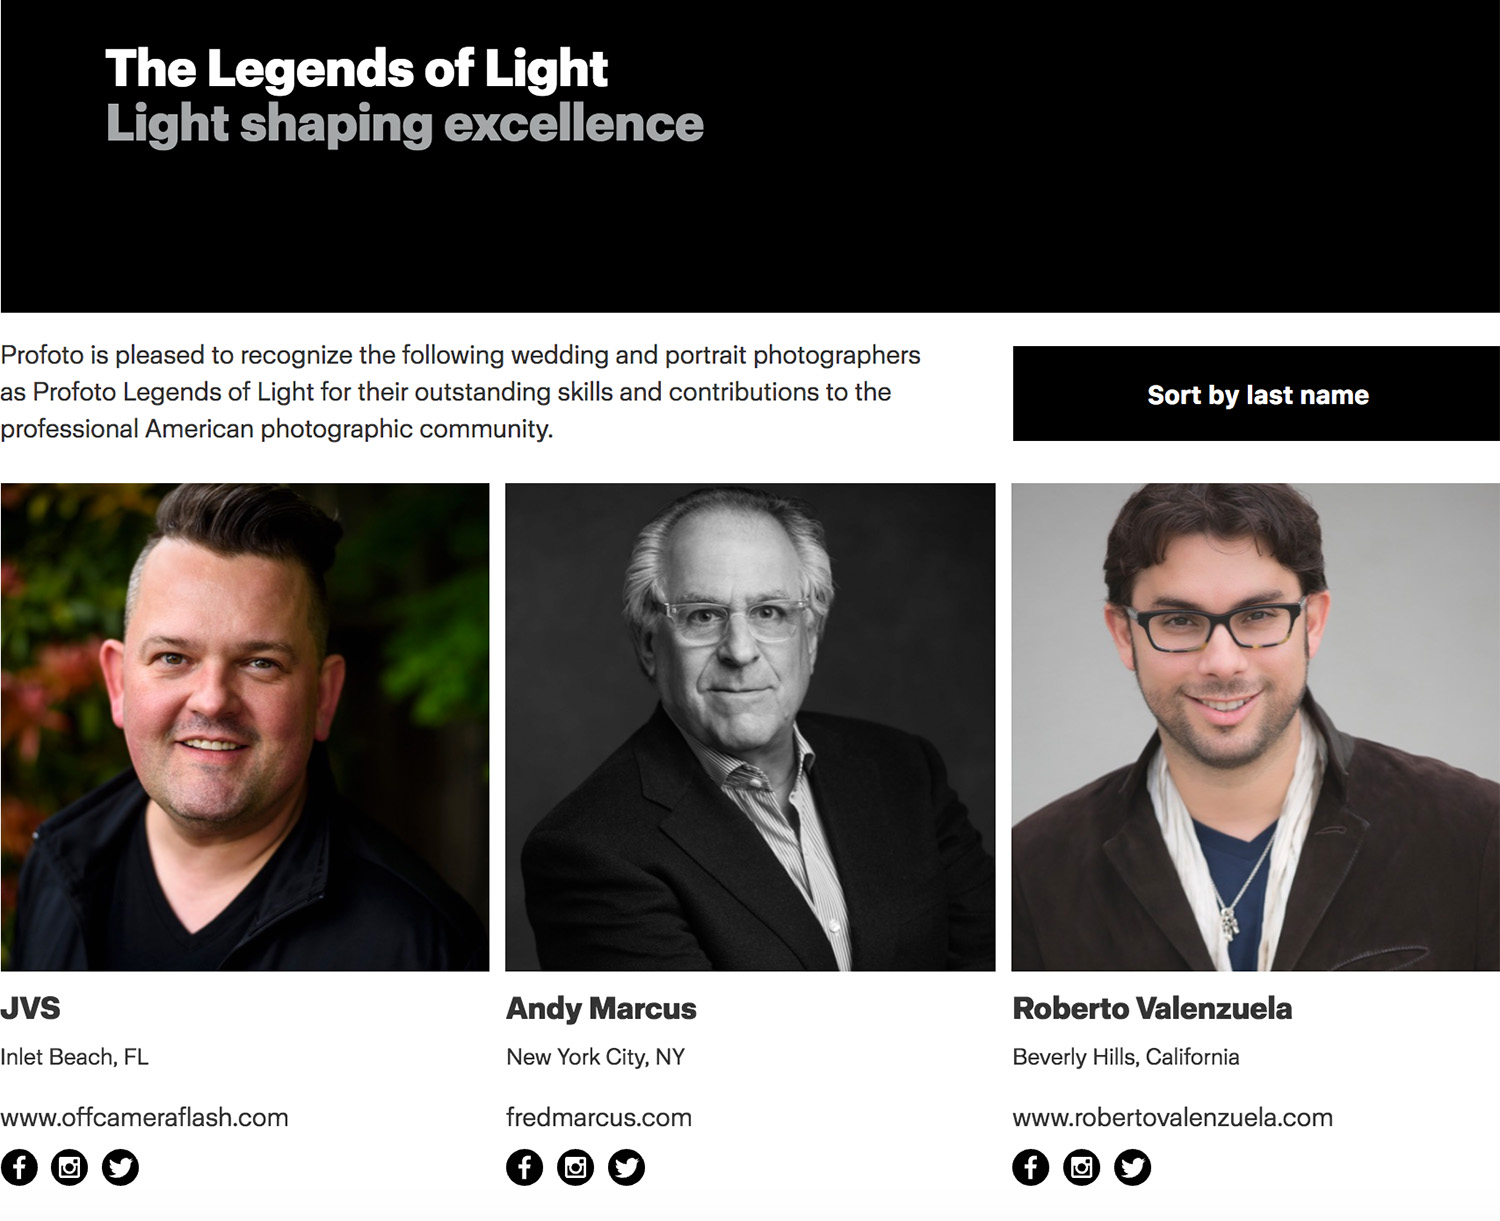 JVS Profoto Legend of Light